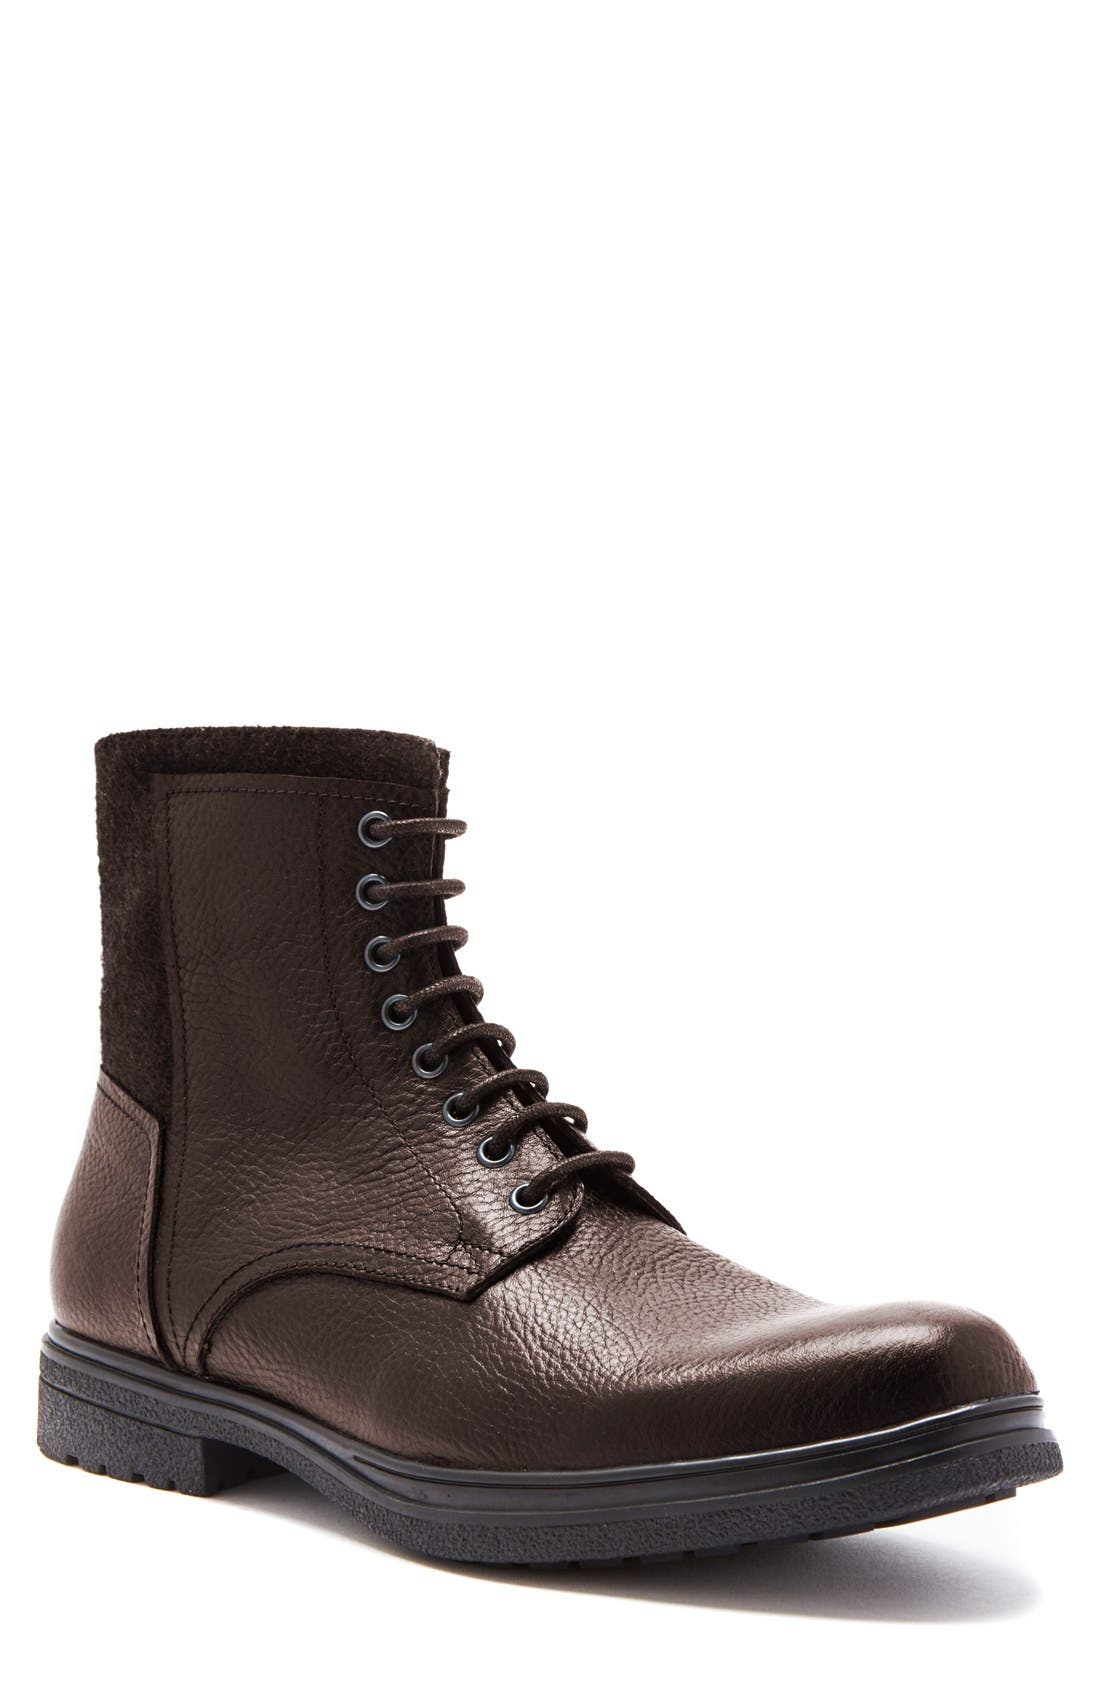 BLONDO 'Backoff' Waterproof Plain Toe Boot